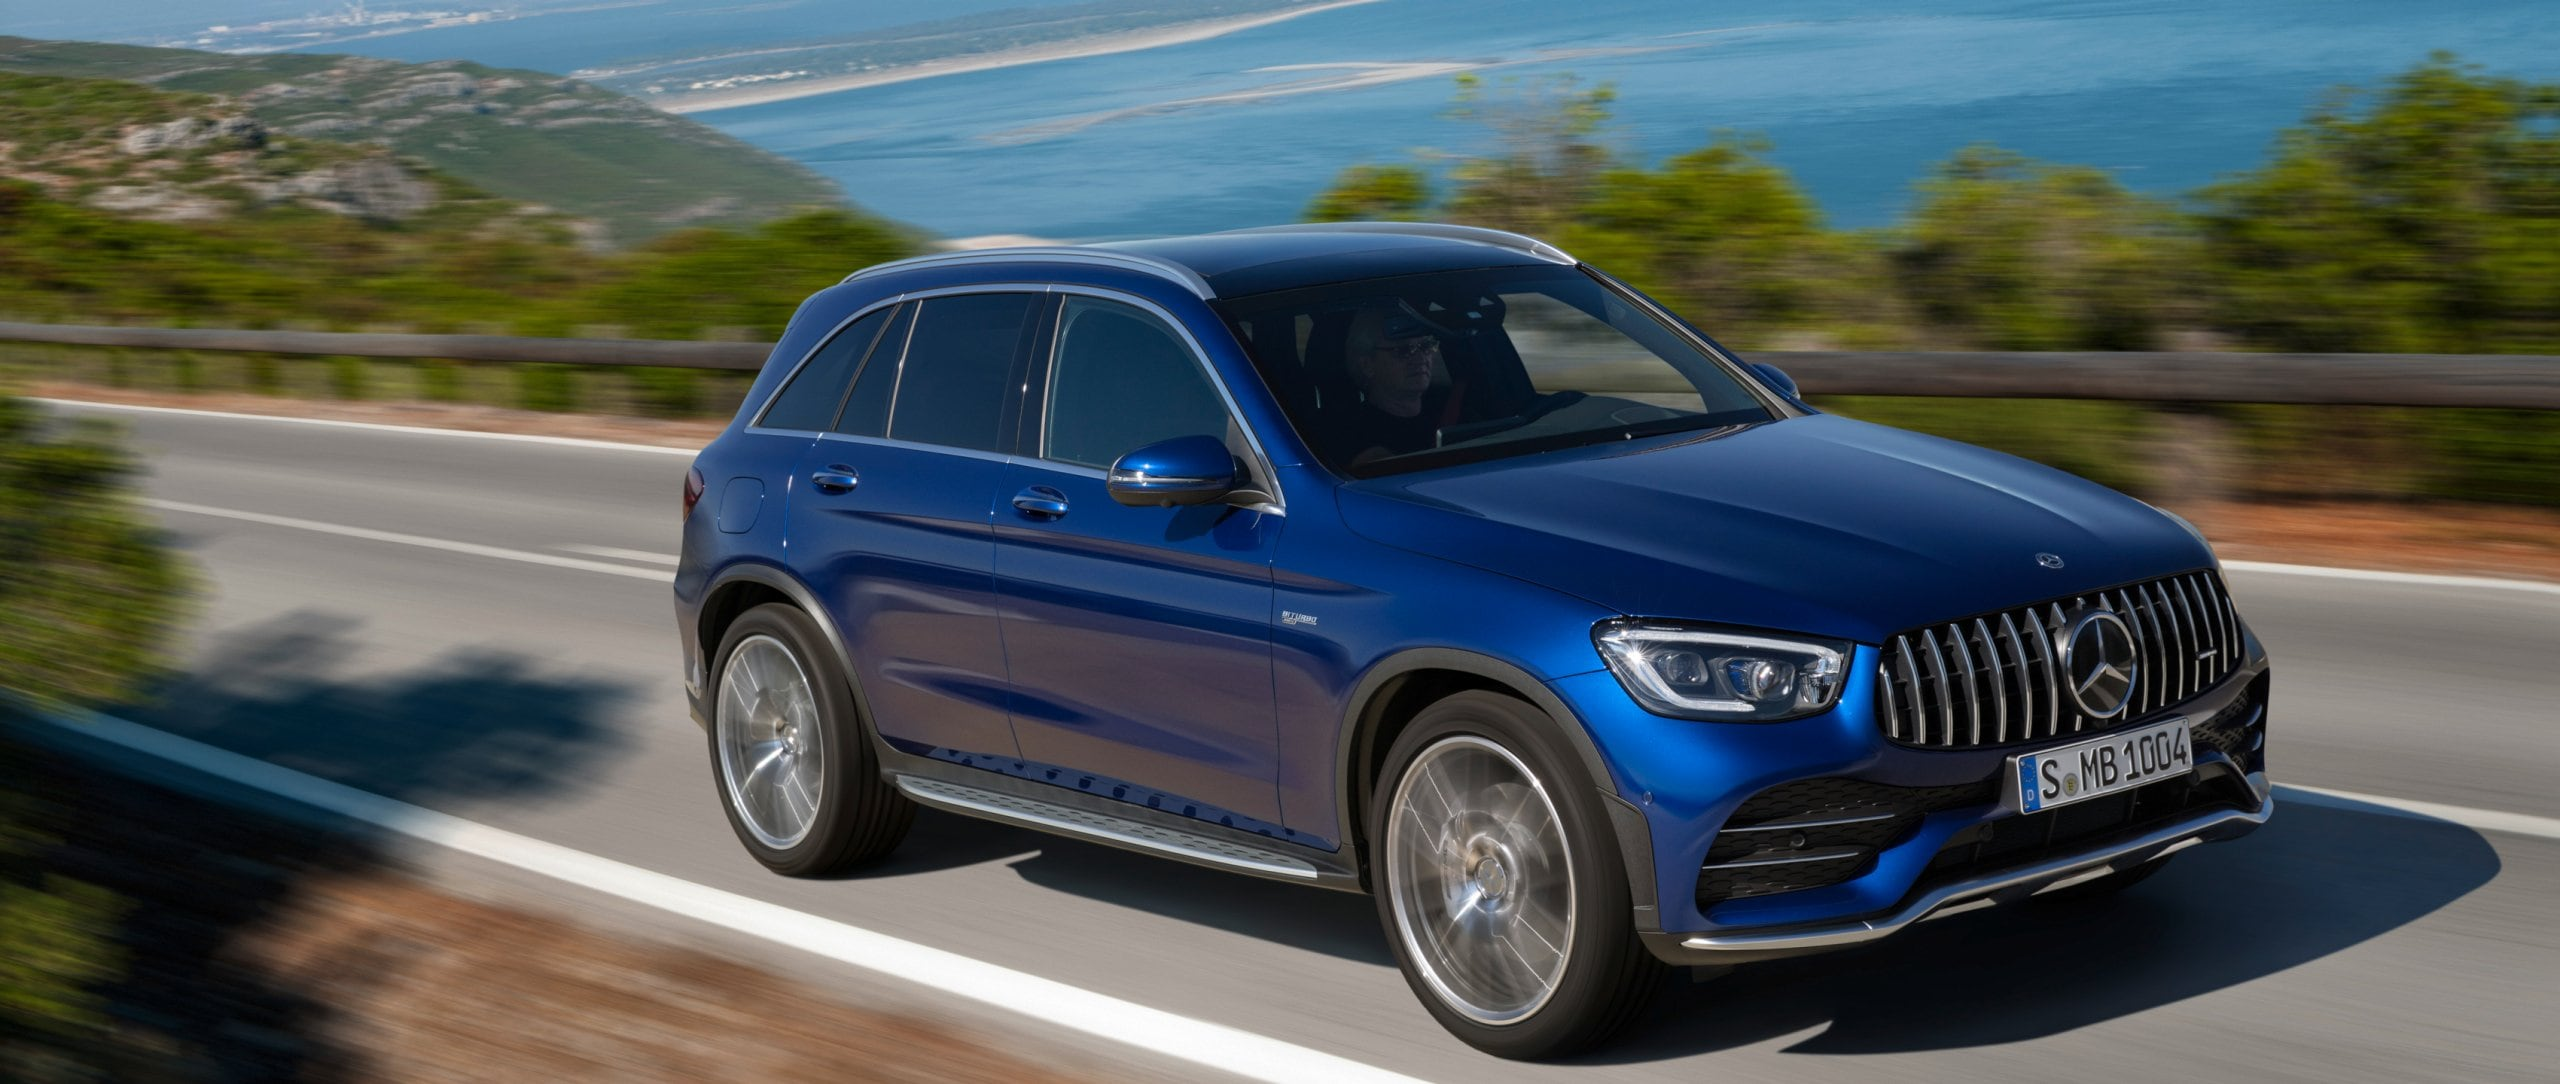 Front view: the 2019 Mercedes-AMG GLC 43 4MATIC SUV (X 253) in brilliant blue on a coastal road.